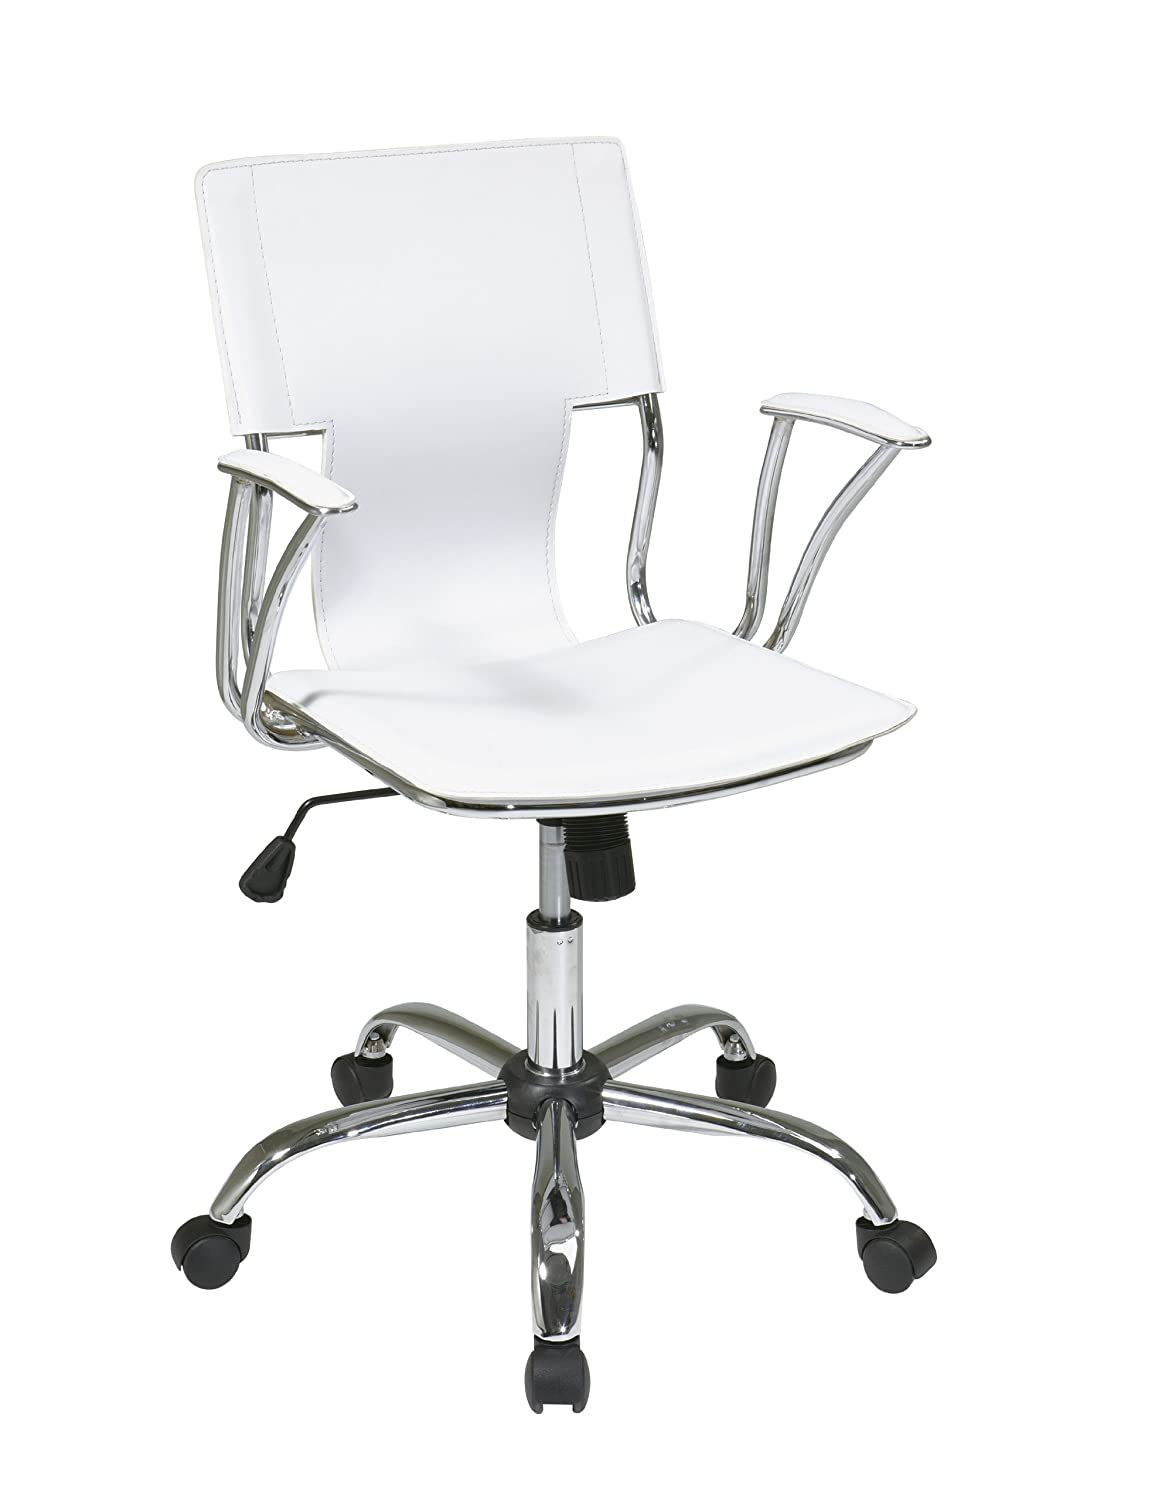 Amazon.com Avenue Six AVE SIX Dorado Contour Seat and Back with Built-in Lumbar Support Adjustable Office Chair White Kitchen u0026 Dining  sc 1 st  Amazon.com & Amazon.com: Avenue Six AVE SIX Dorado Contour Seat and Back with ...